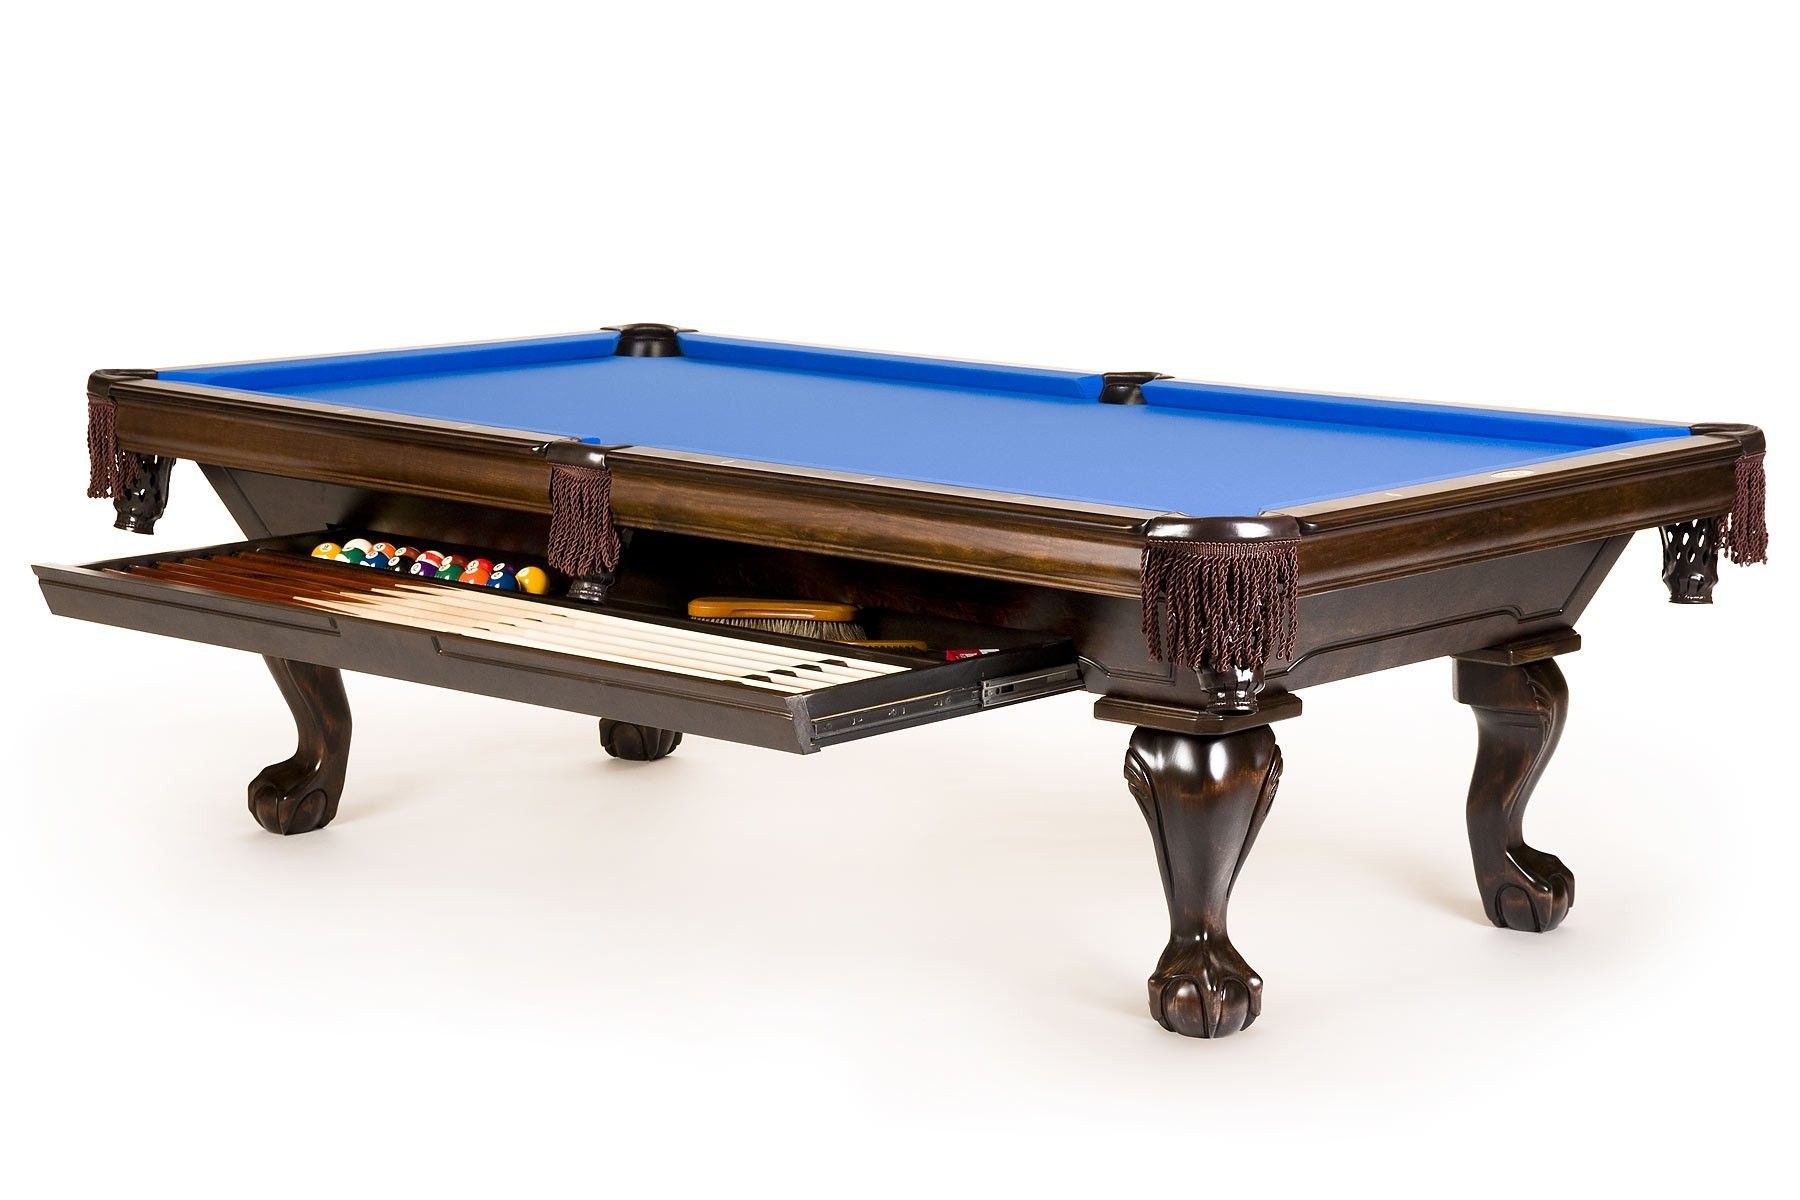 Dining Room Table Decor Classic Pool Table Dining Design Ideas Billiard Pool  Refelting Pool Table Of Fabulous Convertible Dining Room Pool Table Design  ...